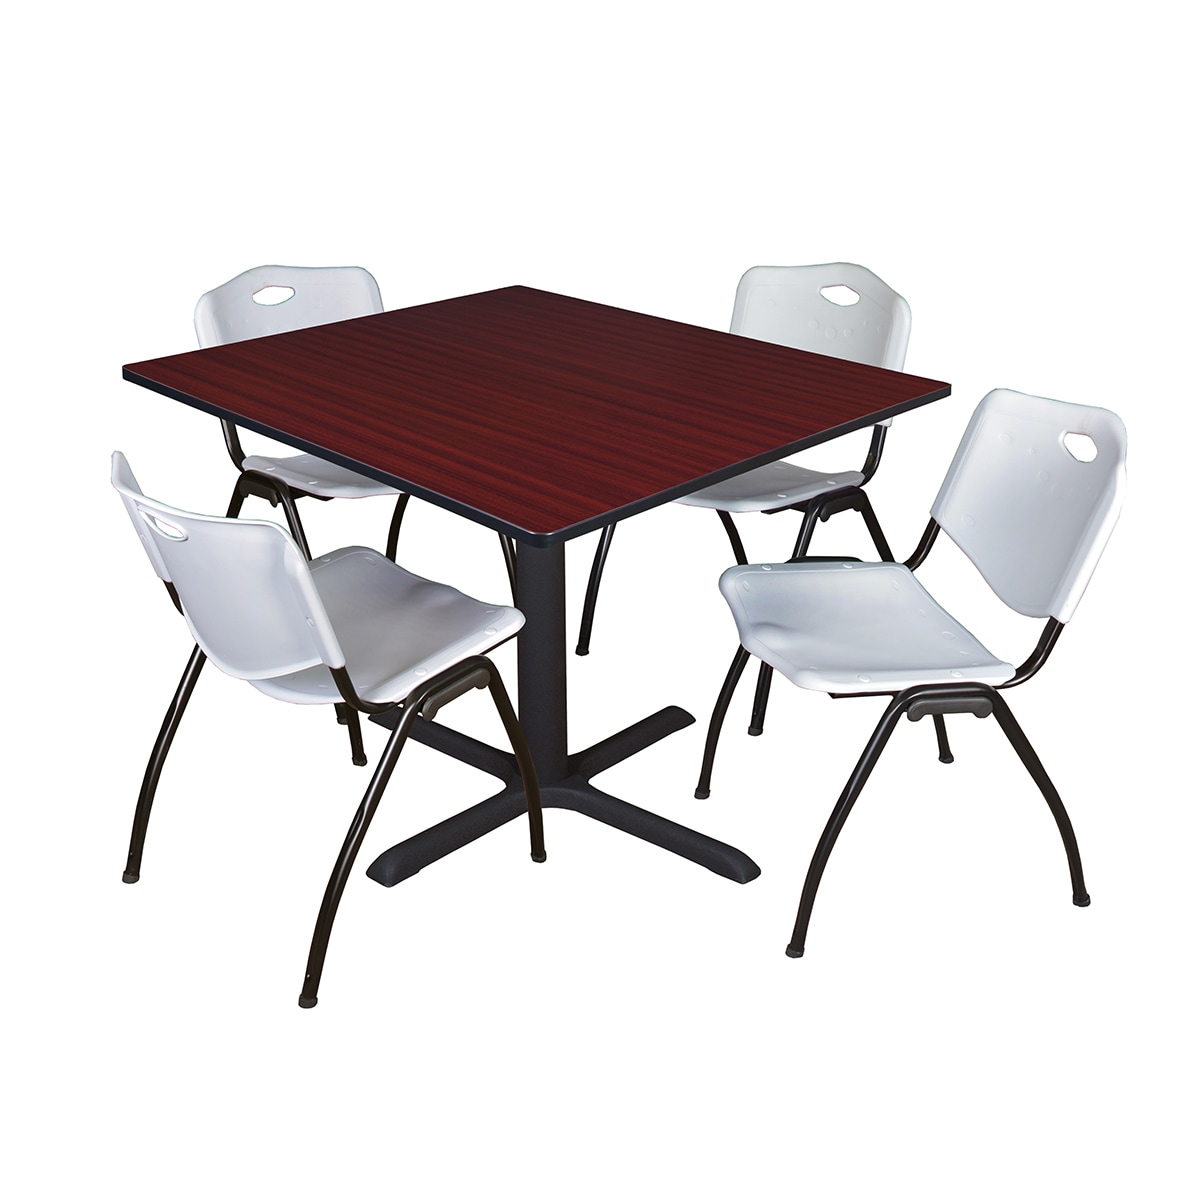 Details About Square 48 Inch Table And 4 M Stackable Grey Chairs